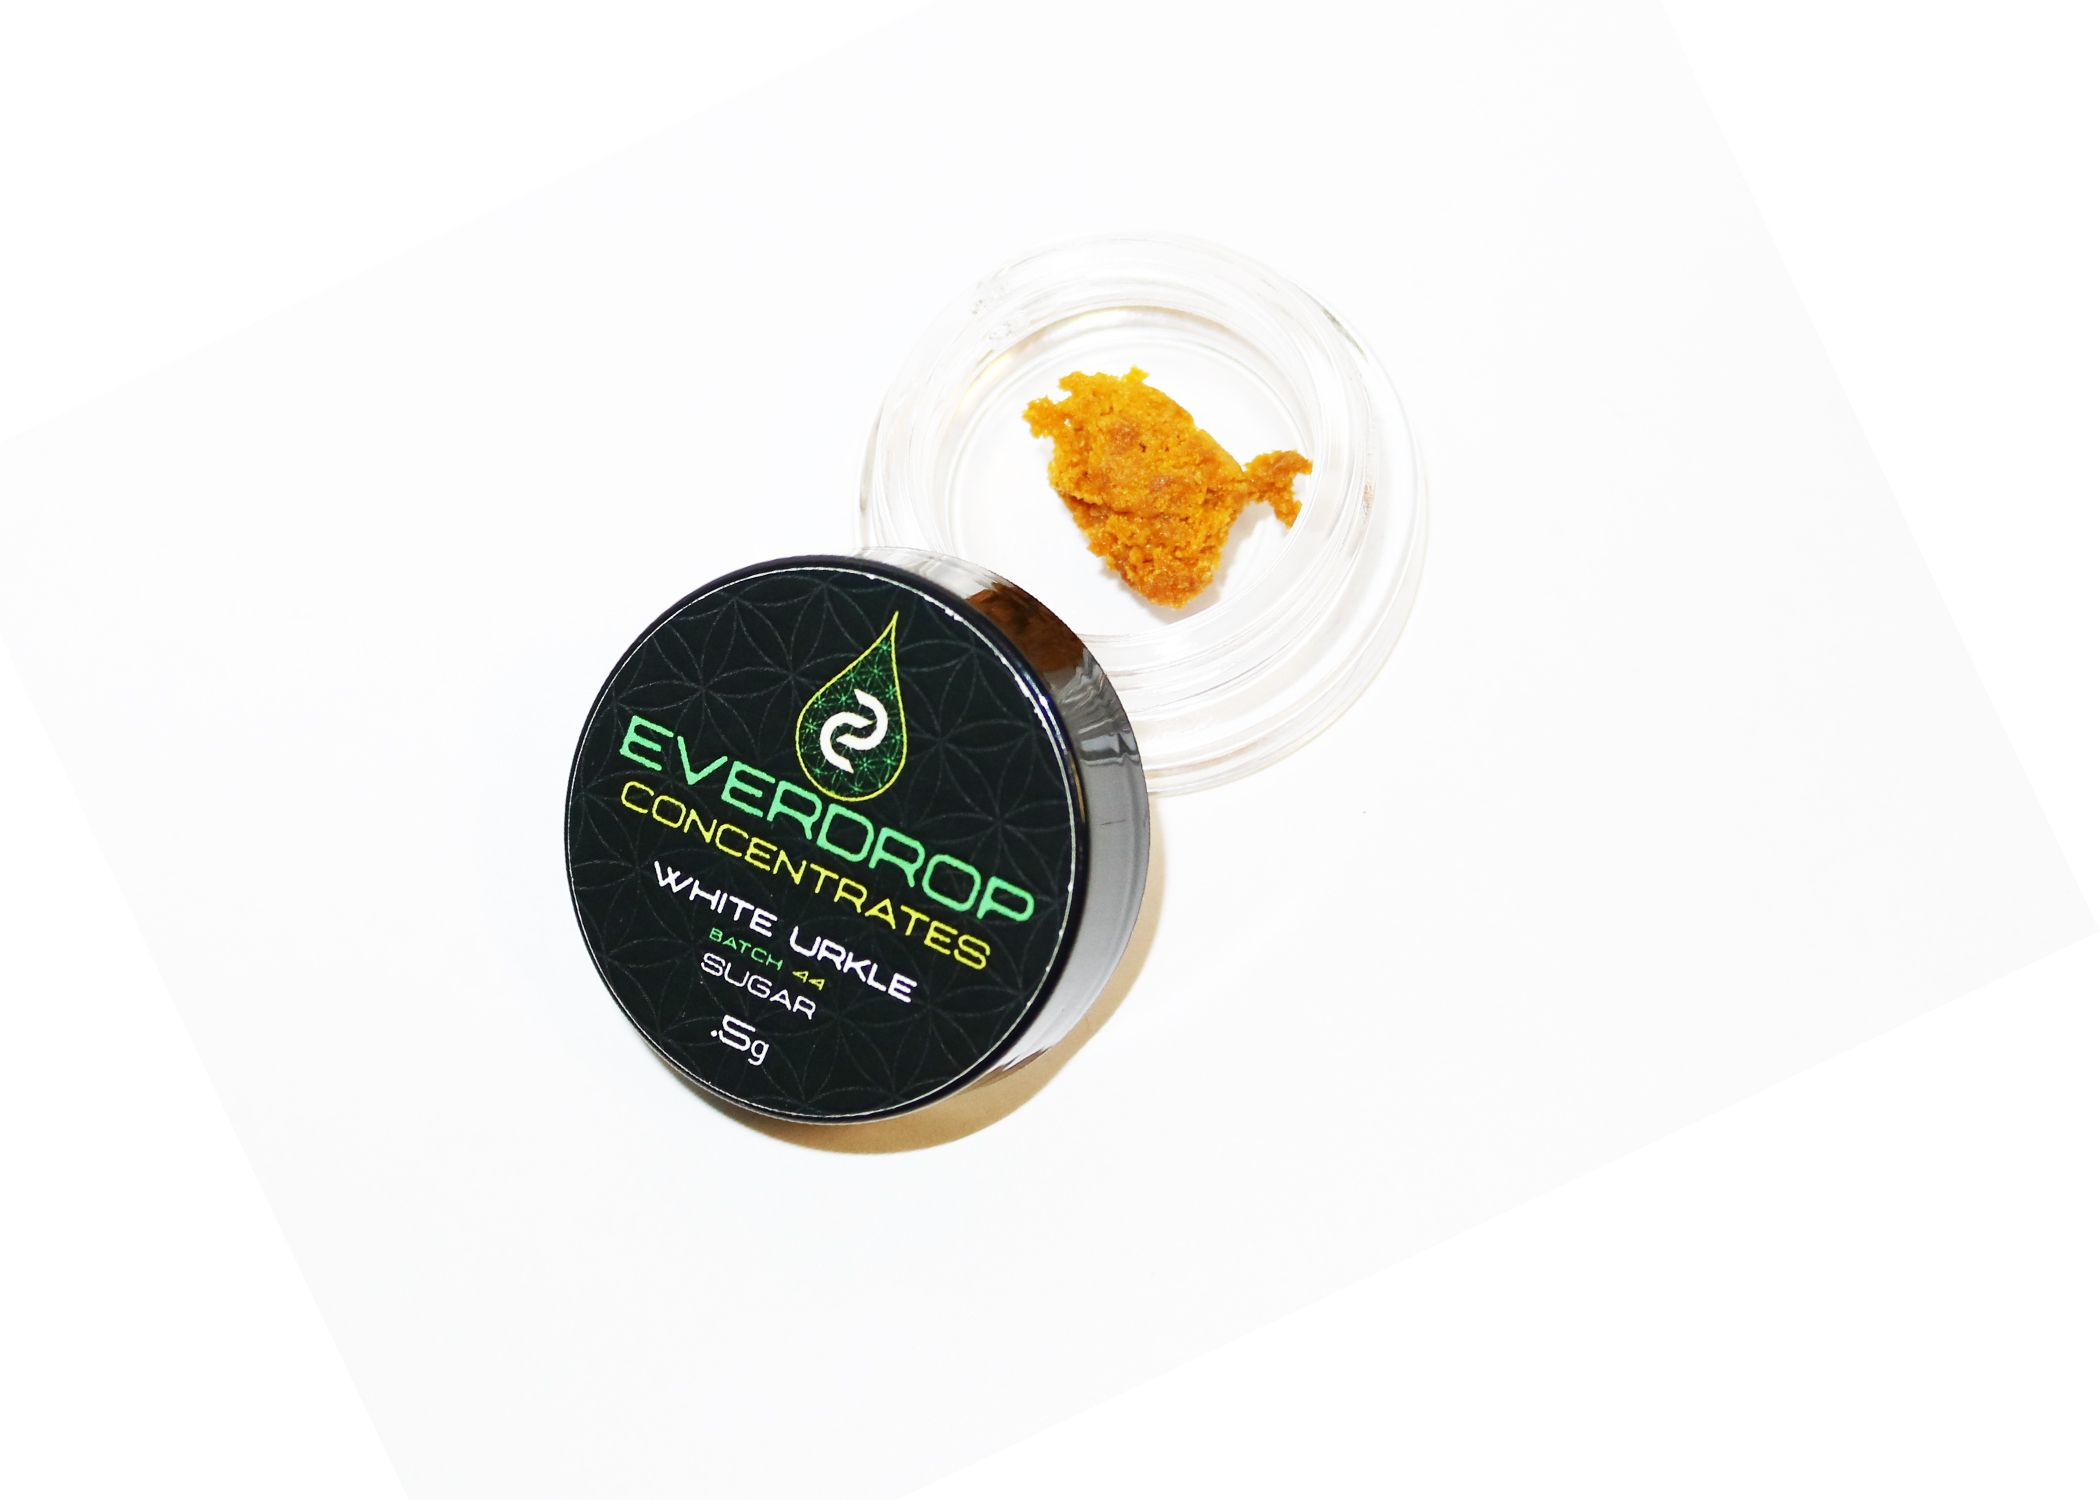 Everdrop Concentrates: White Urkle